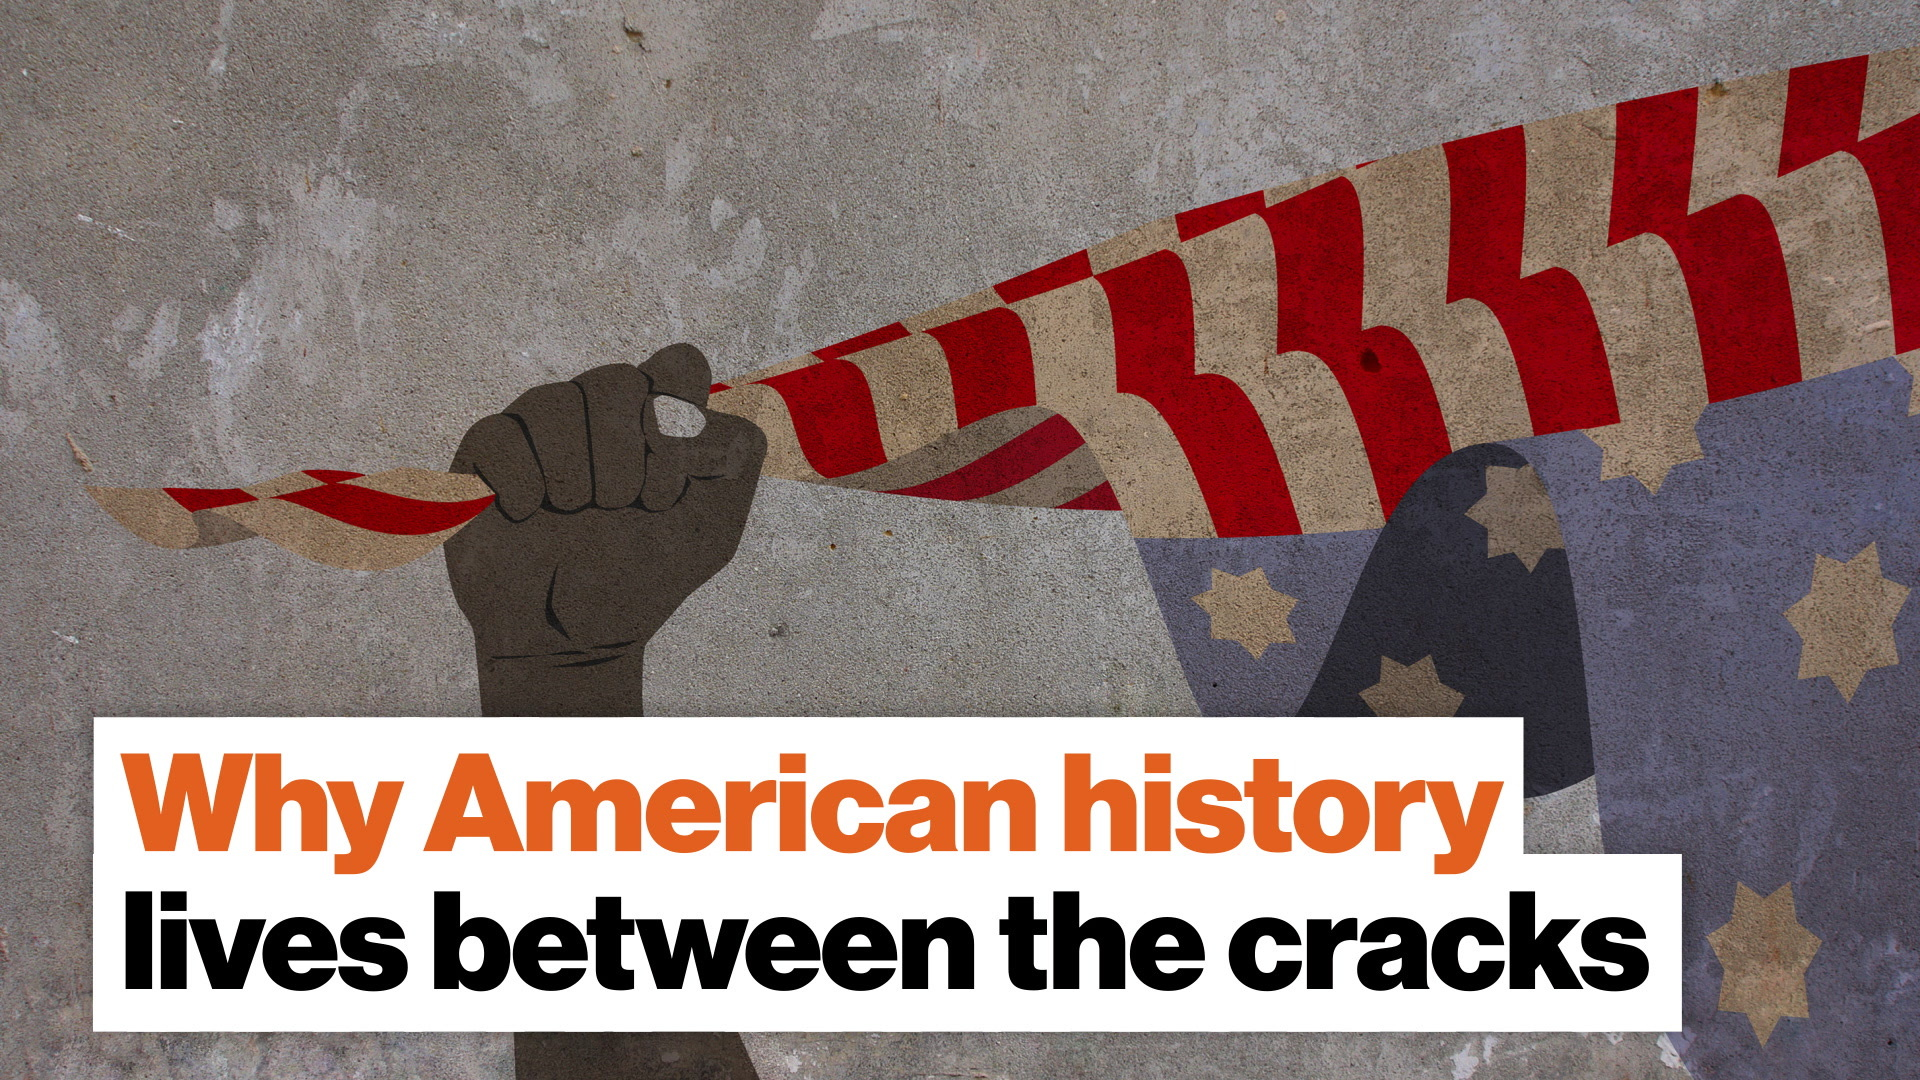 Why American history lives between the cracks